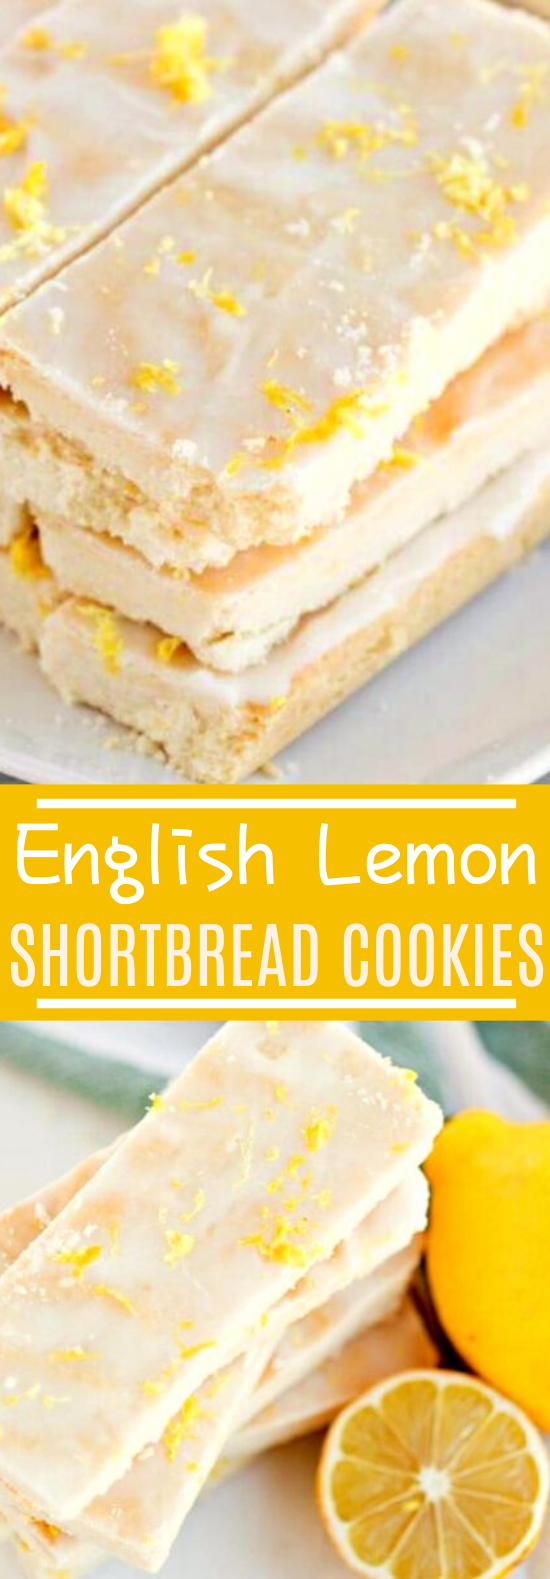 English Lemon Shortbread Strips #cookies #recipes #desserts #lemon #easy